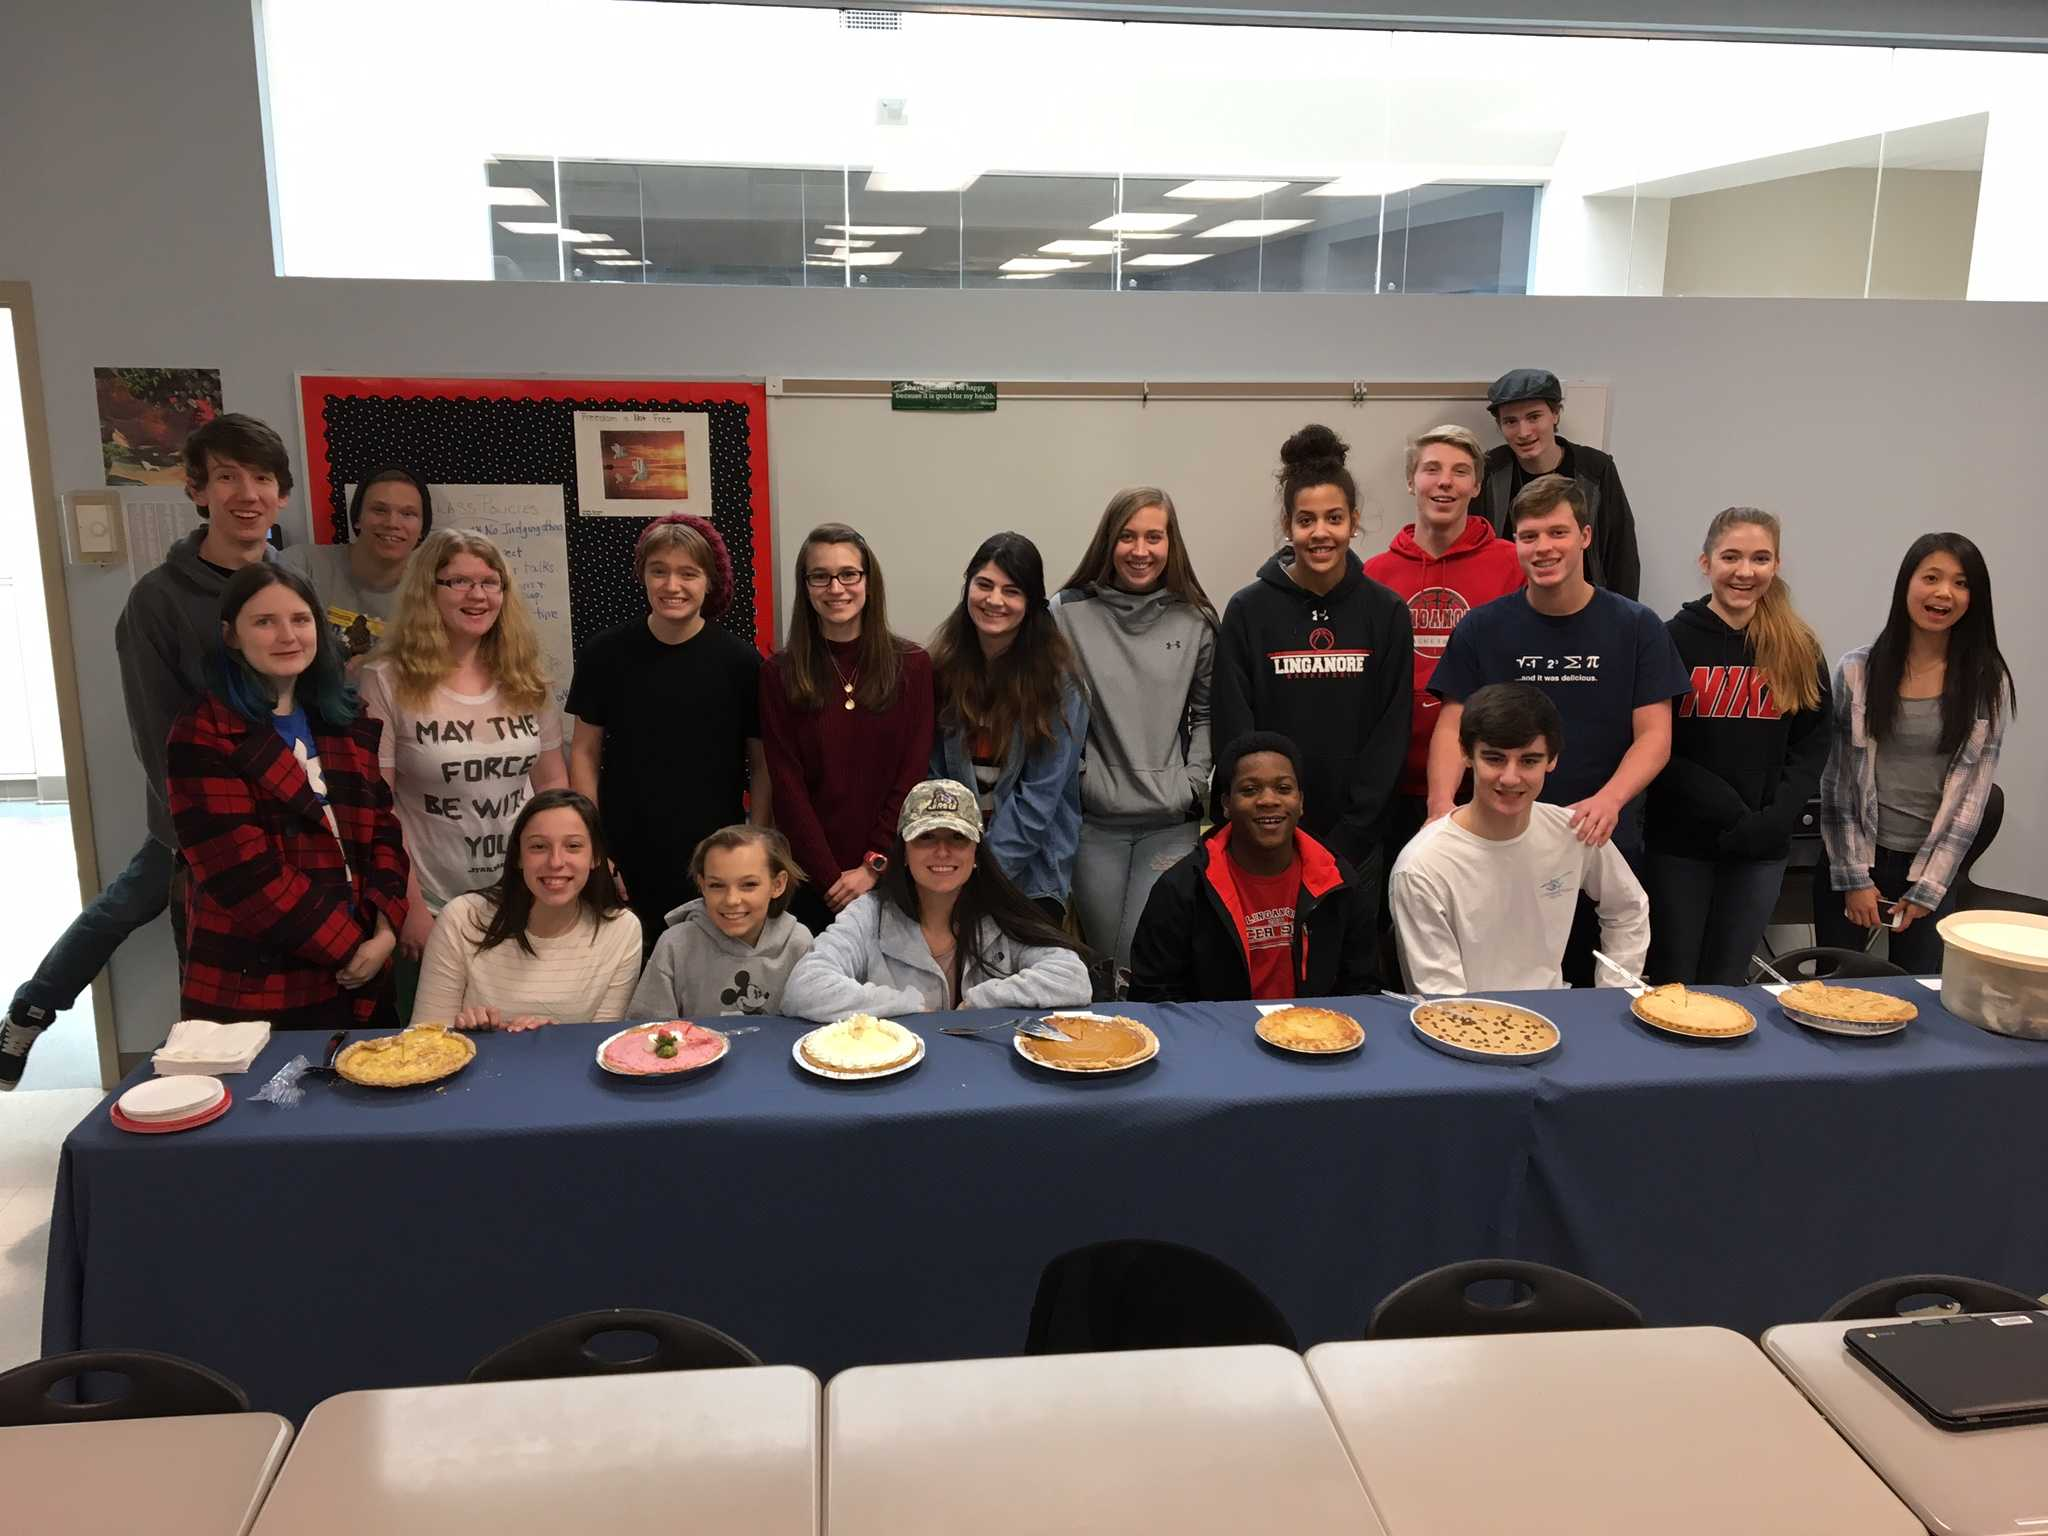 Lancer Media Celebrates Pi day by baking pies and treating staff to an open house.